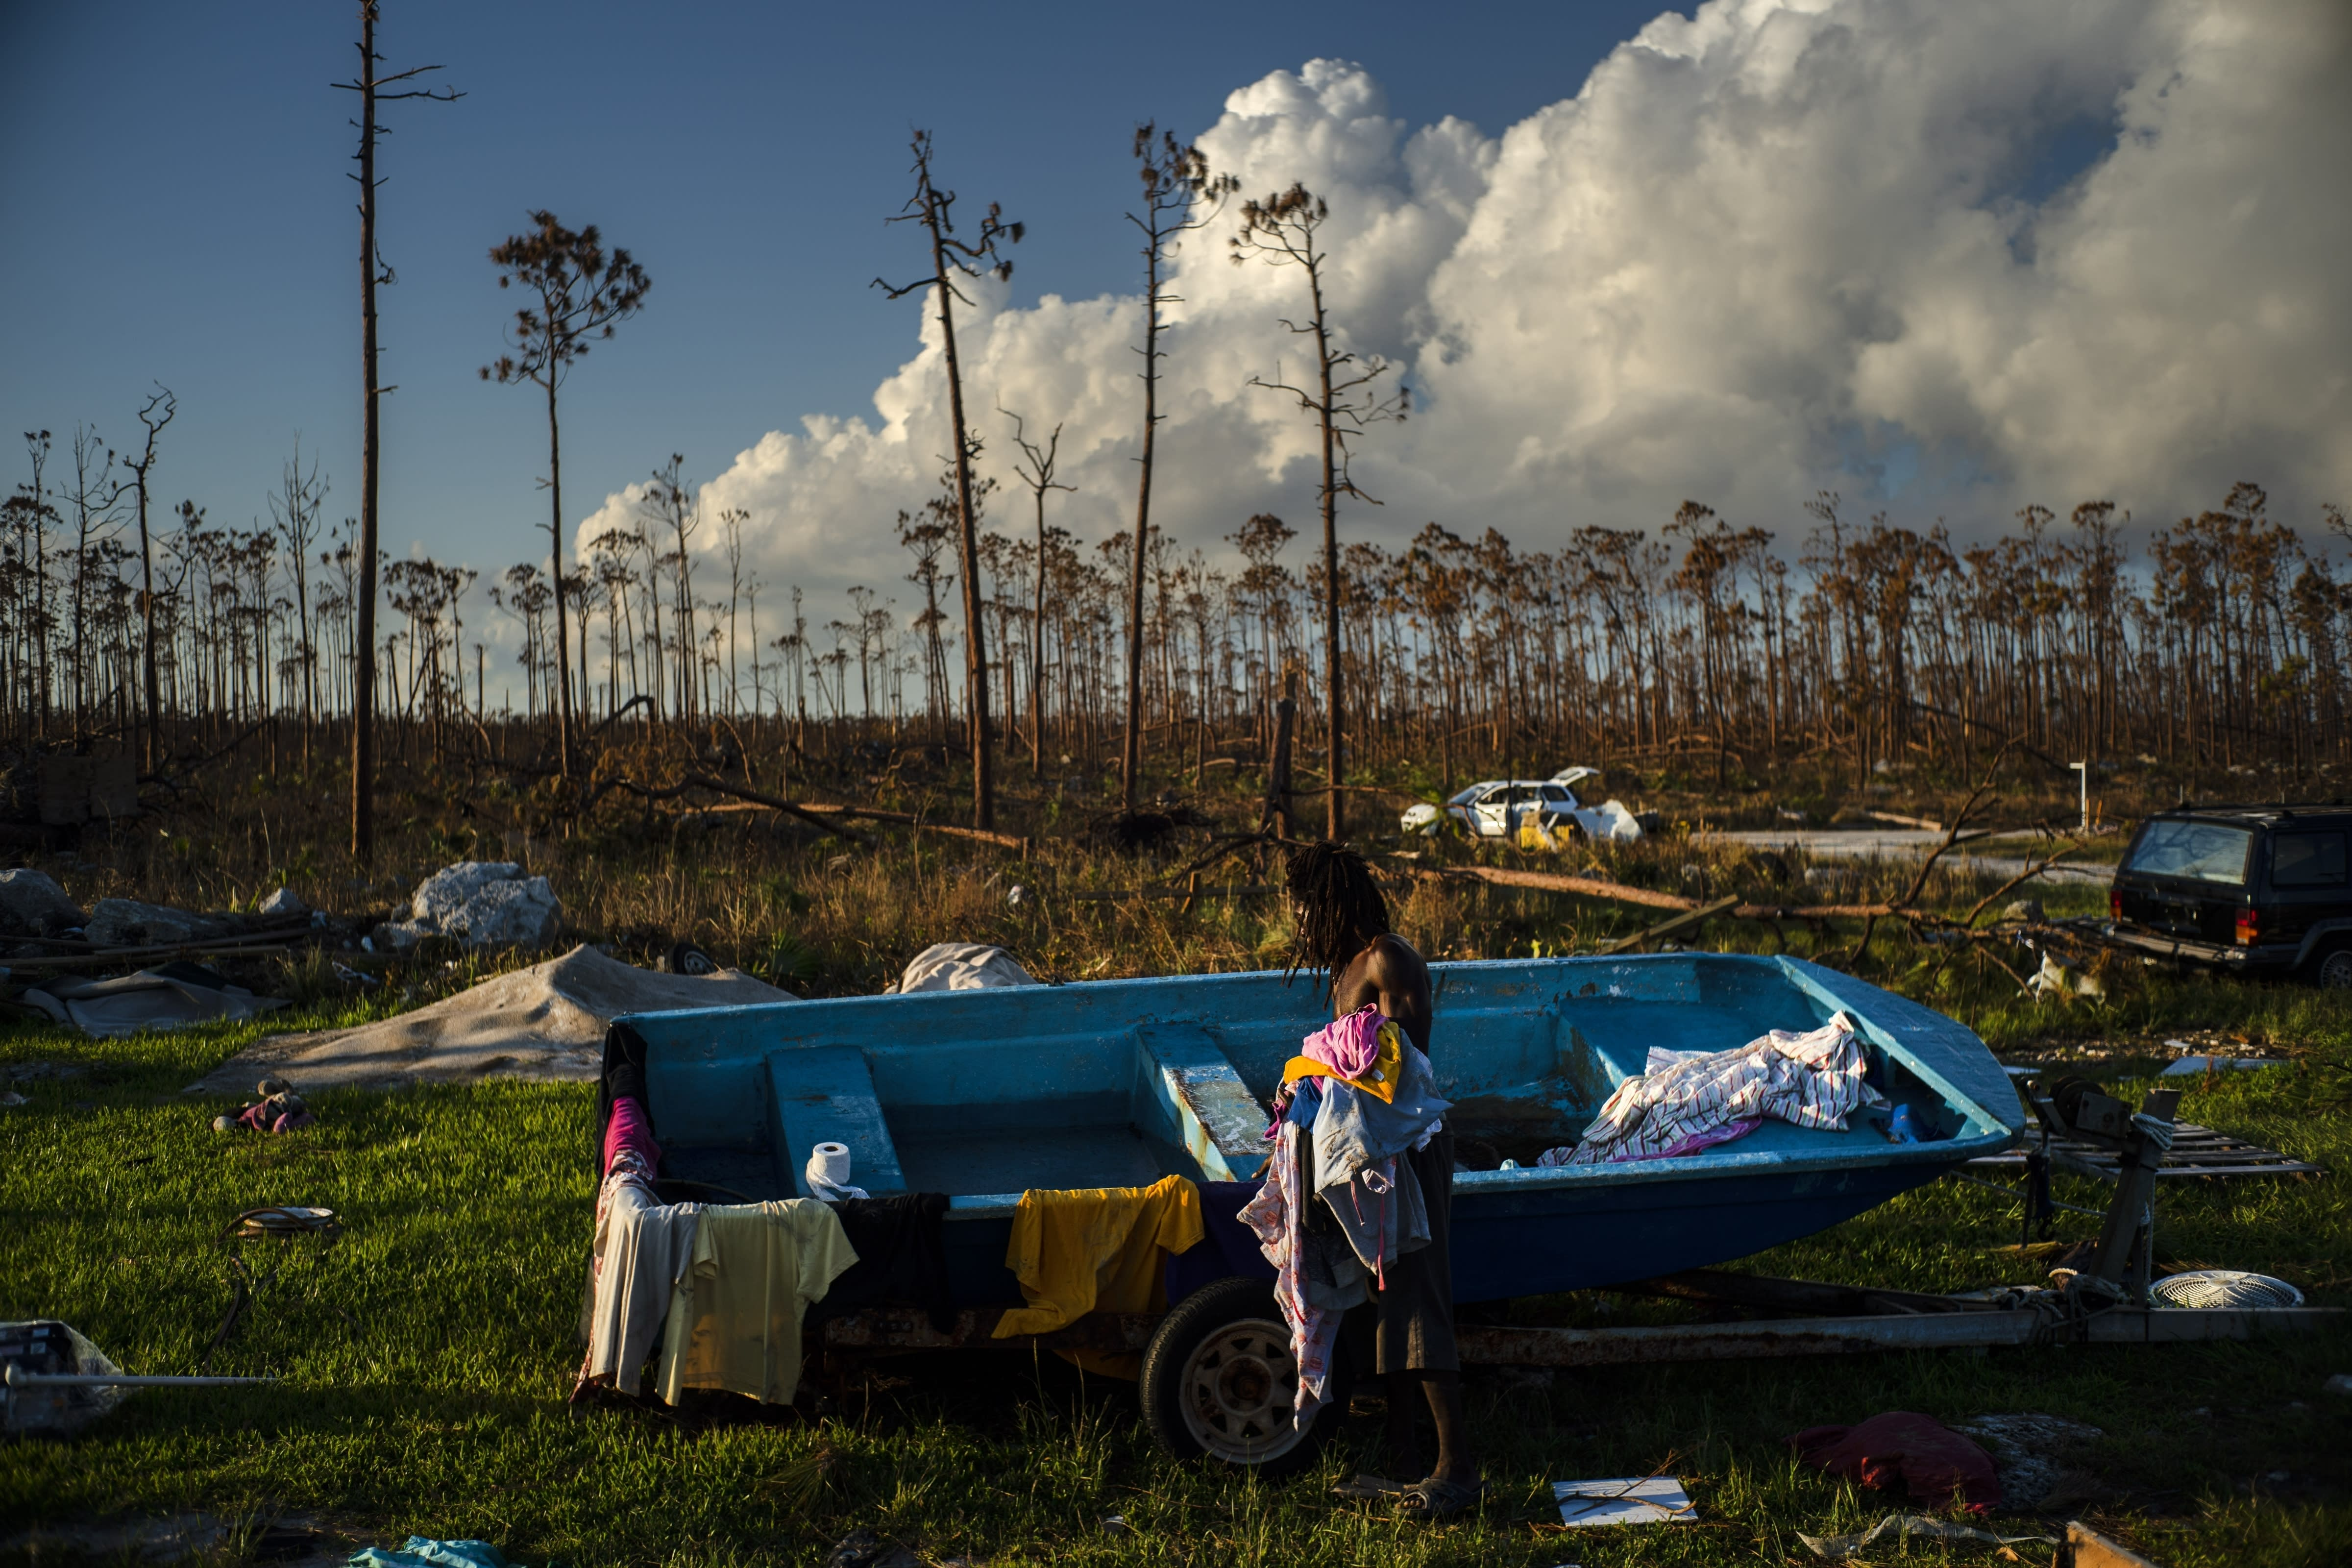 Valentino Ingraham washes clothing to remove salt and dirt amid the rubble of his mother's property destroyed by Hurricane Dorian in Rocky Creek East End, Grand Bahama, Bahamas, Sunday, Sept. 8, 2019. The motors of his family's boats were also destroyed. (AP Photo/Ramon Espinosa)